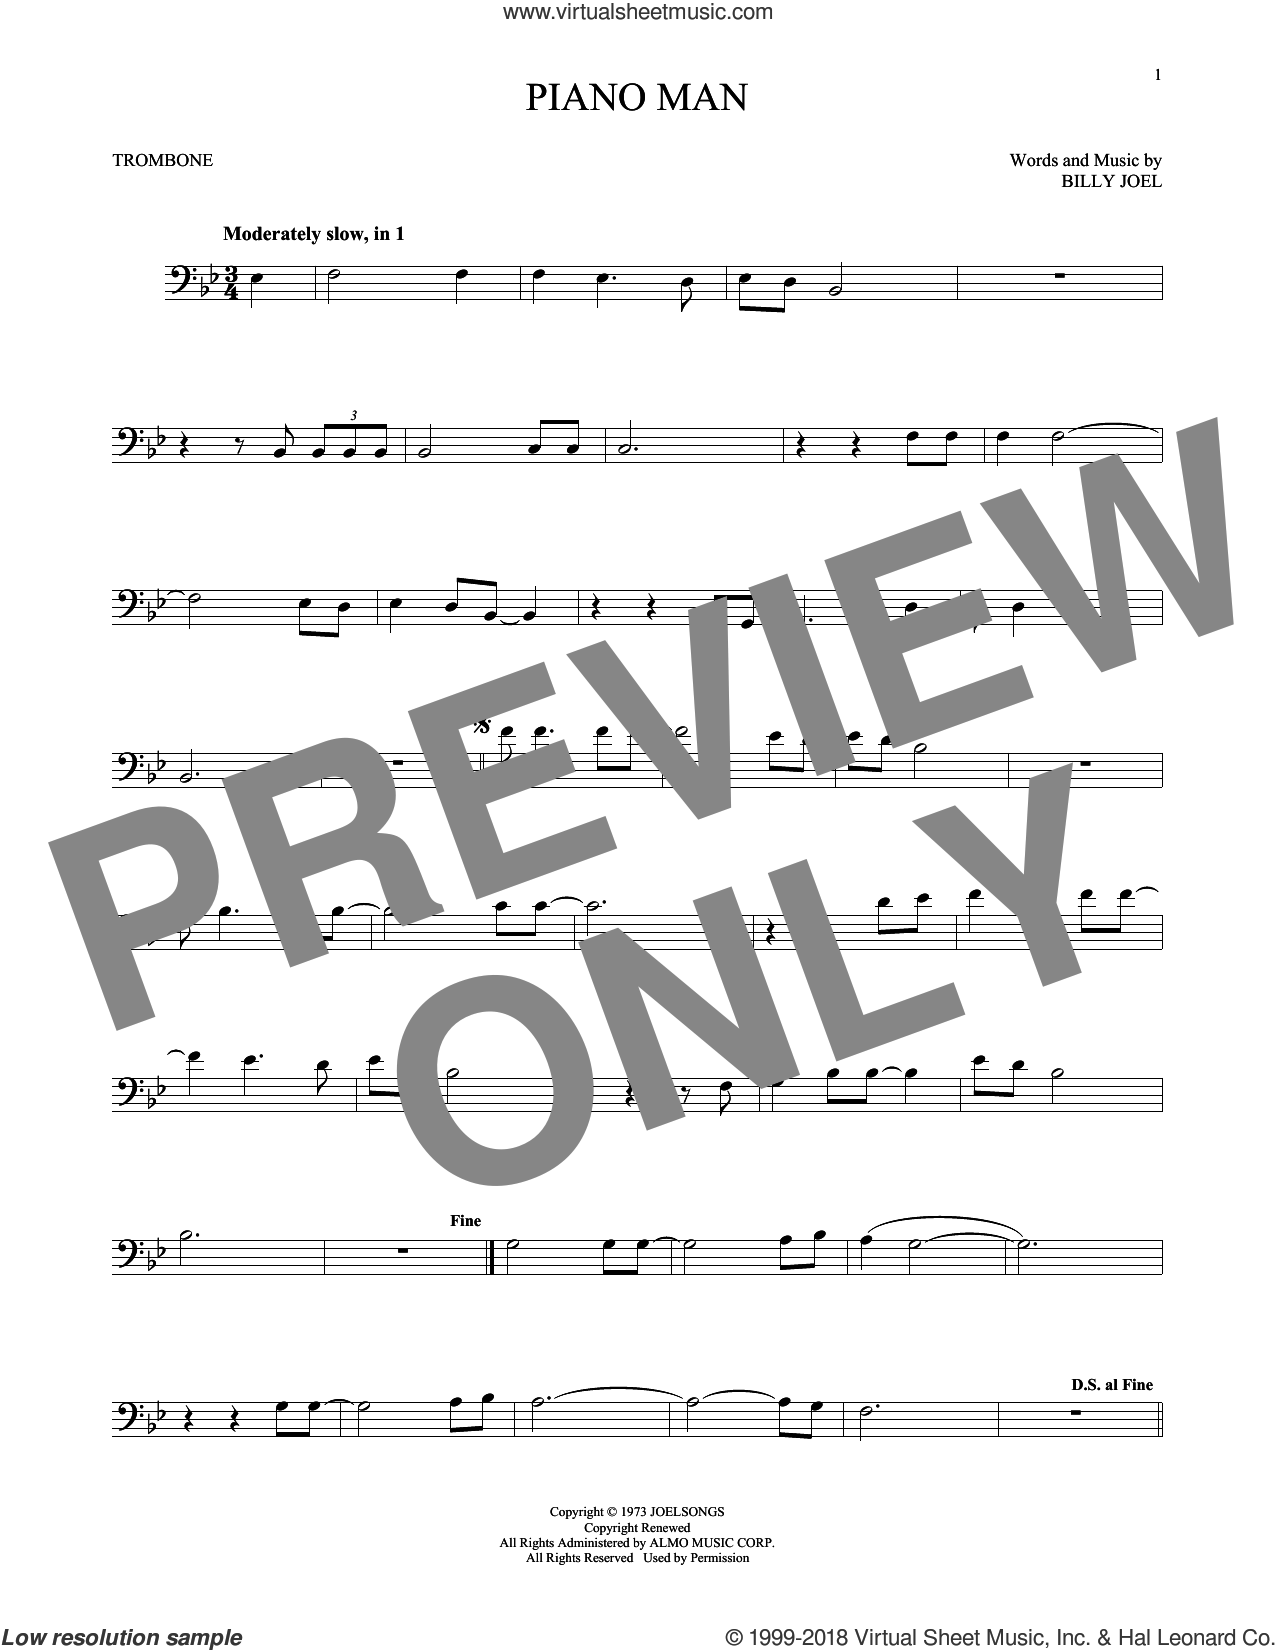 Piano Man sheet music for trombone solo by Billy Joel, intermediate skill level